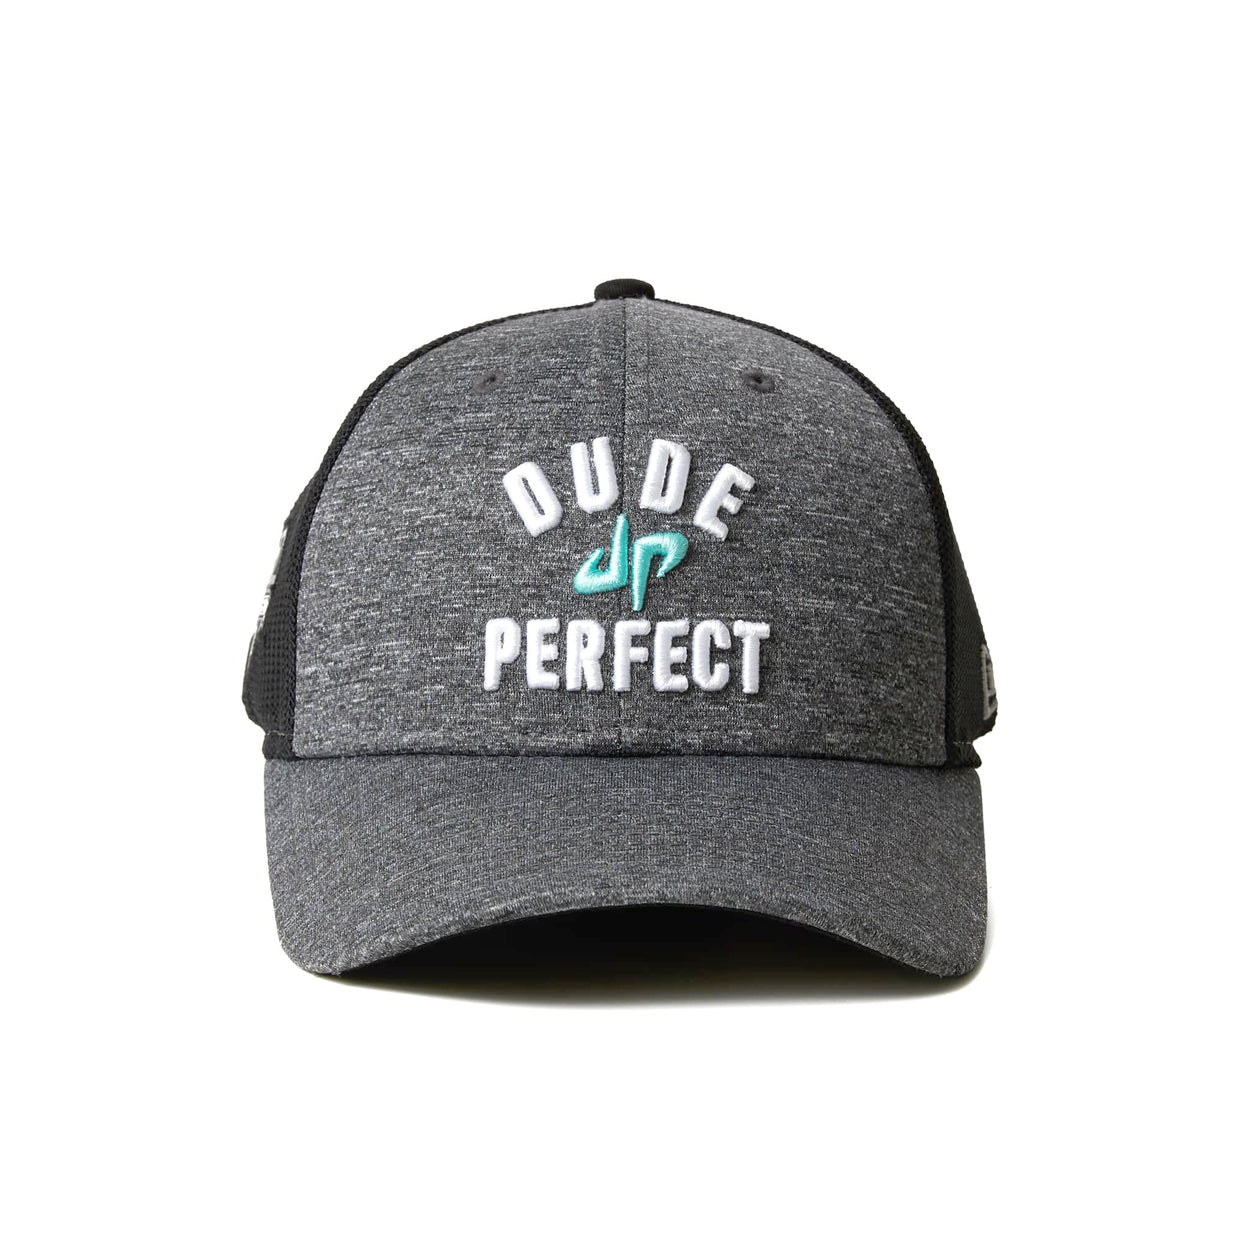 Dude Perfect x New Era 39Thirty Stretch Fit Greatest Of All Time Hat